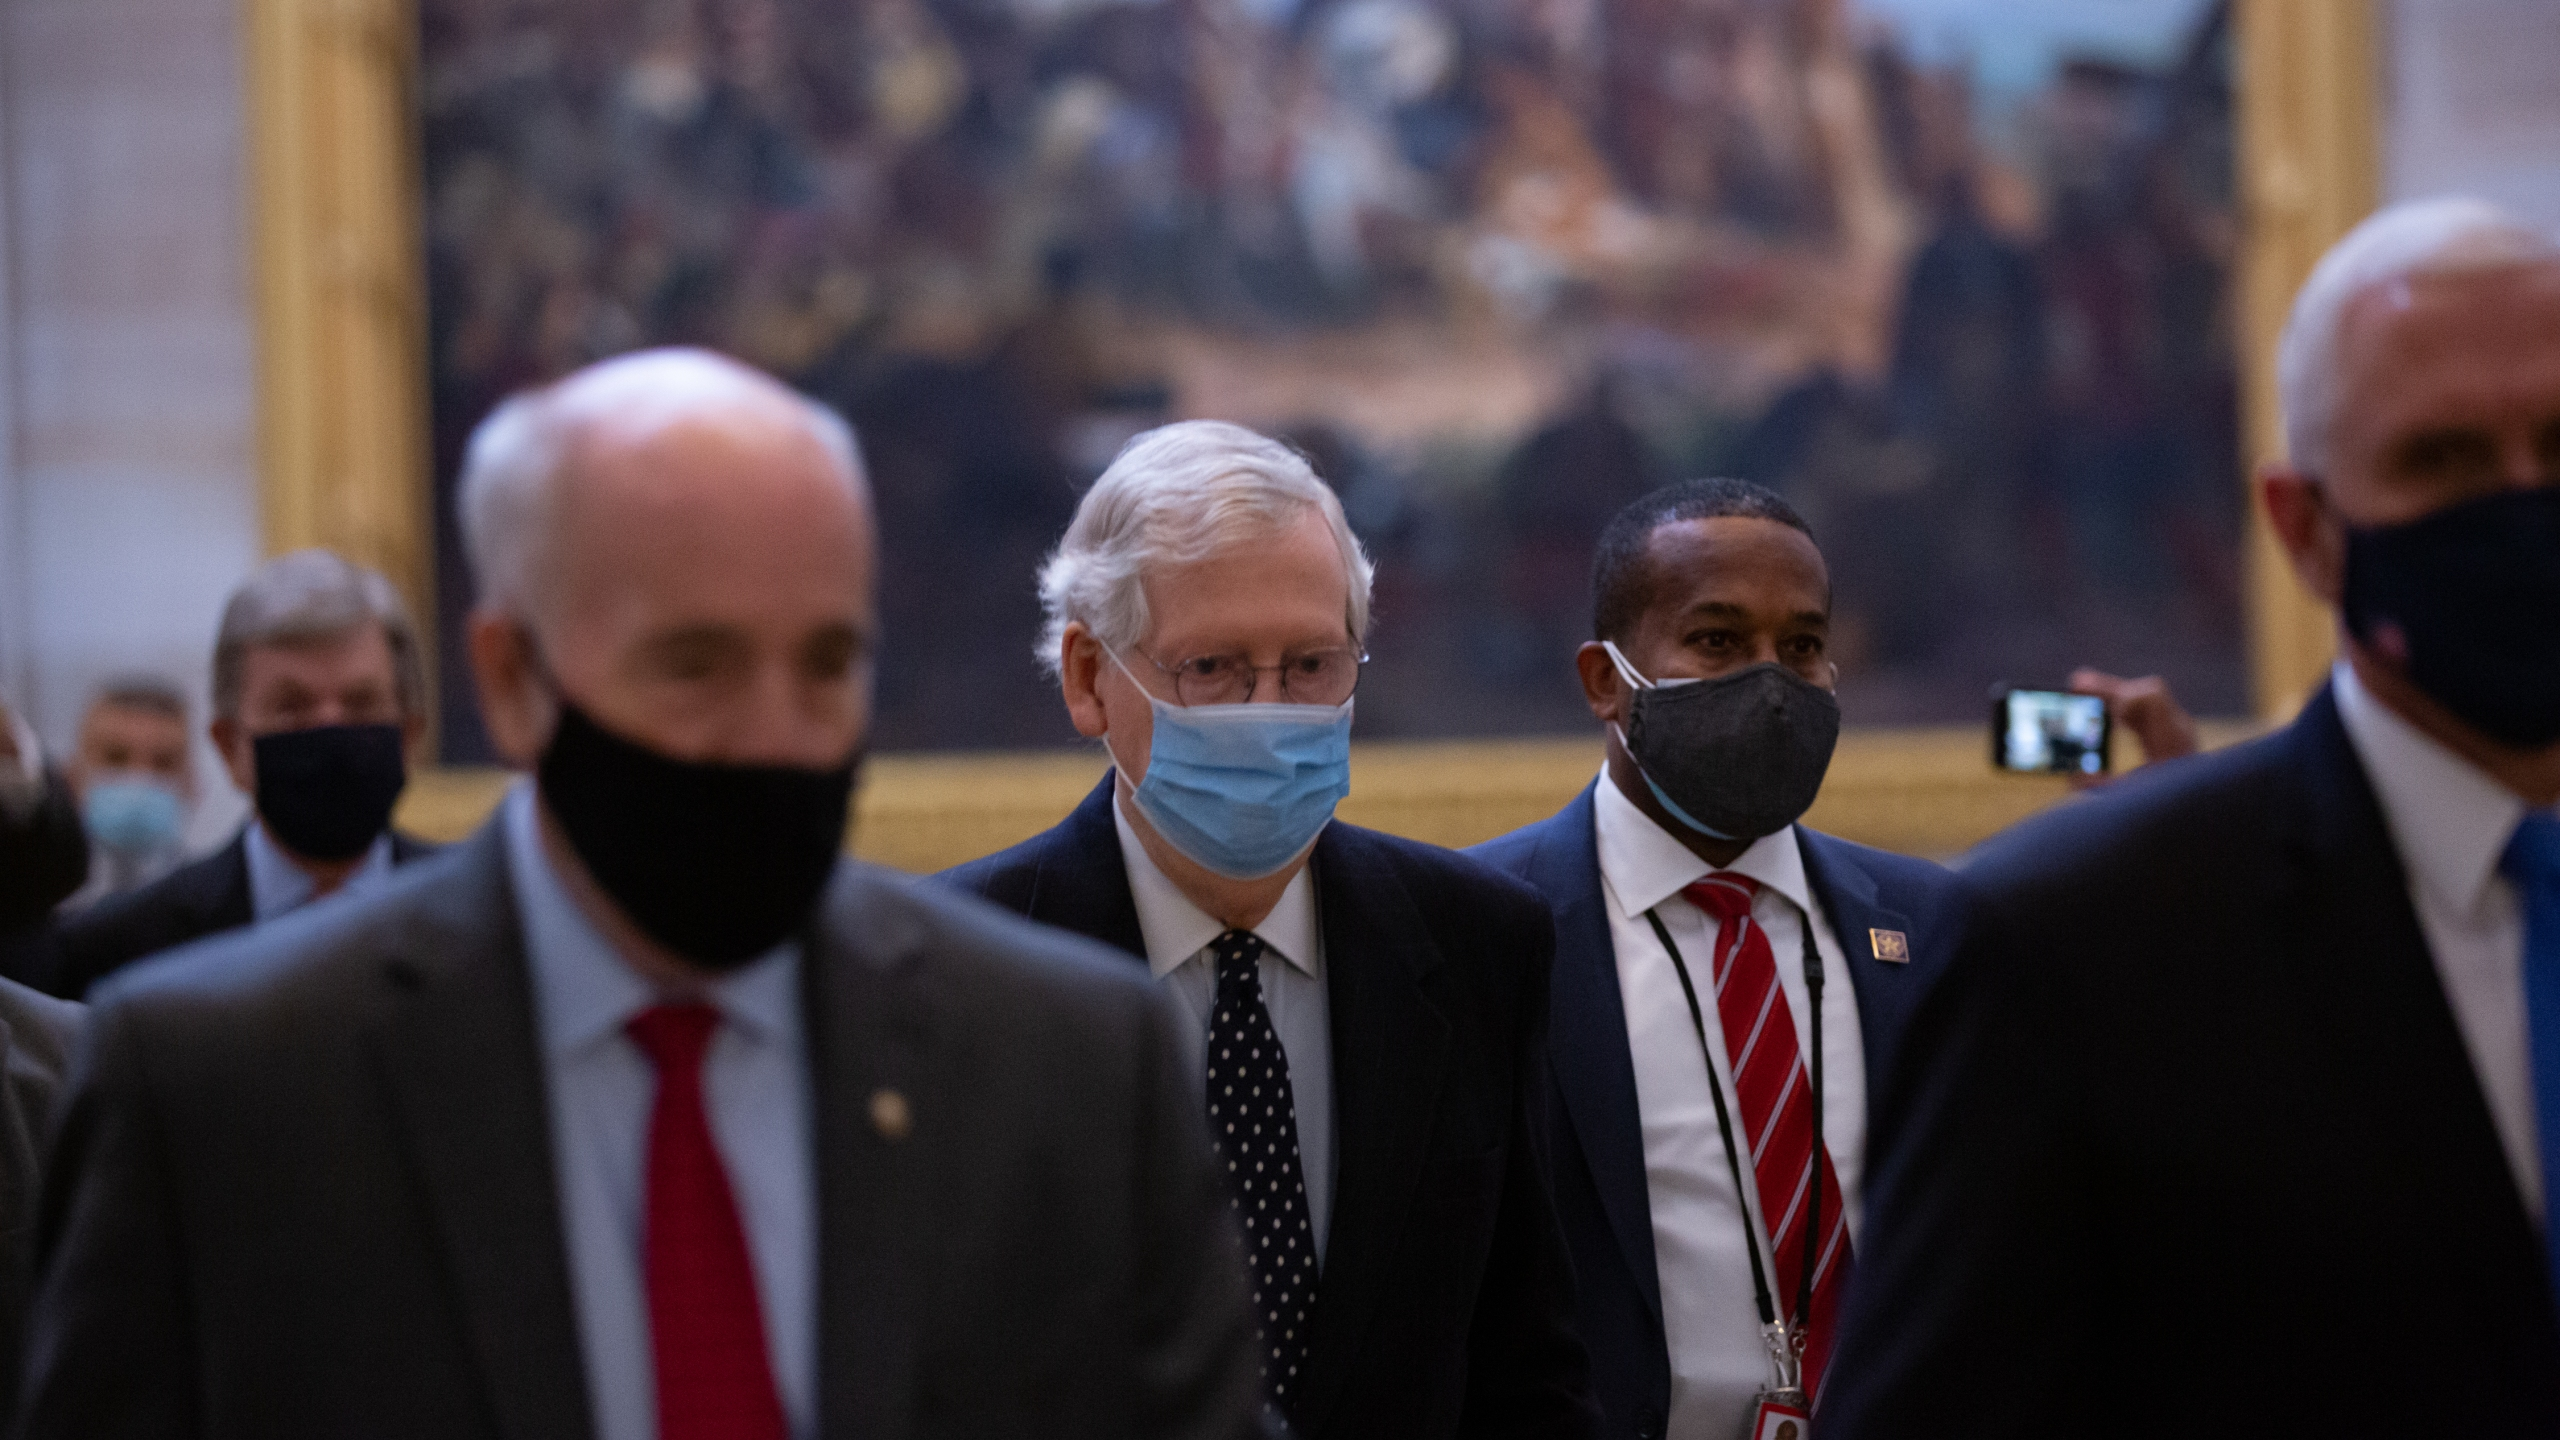 Senate Majority Leader Mitch McConnell, center, walks through the Rotunda headed to the House Chamber at the U.S. Capitol on Jan. 6, 2021. (Cheriss May / Getty Images)